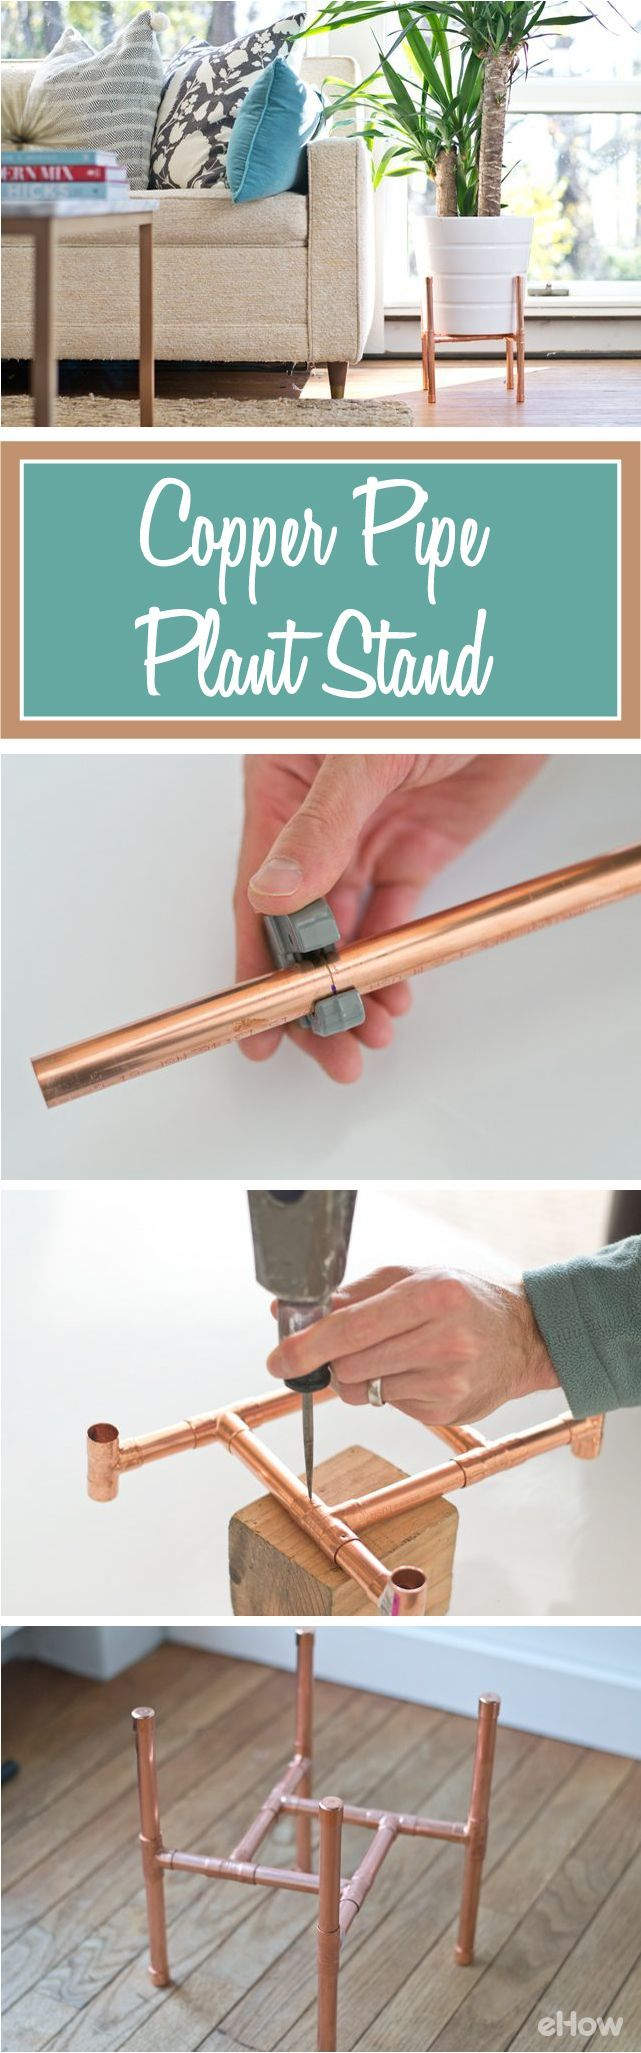 Make this beautiful copper pipe plant stand